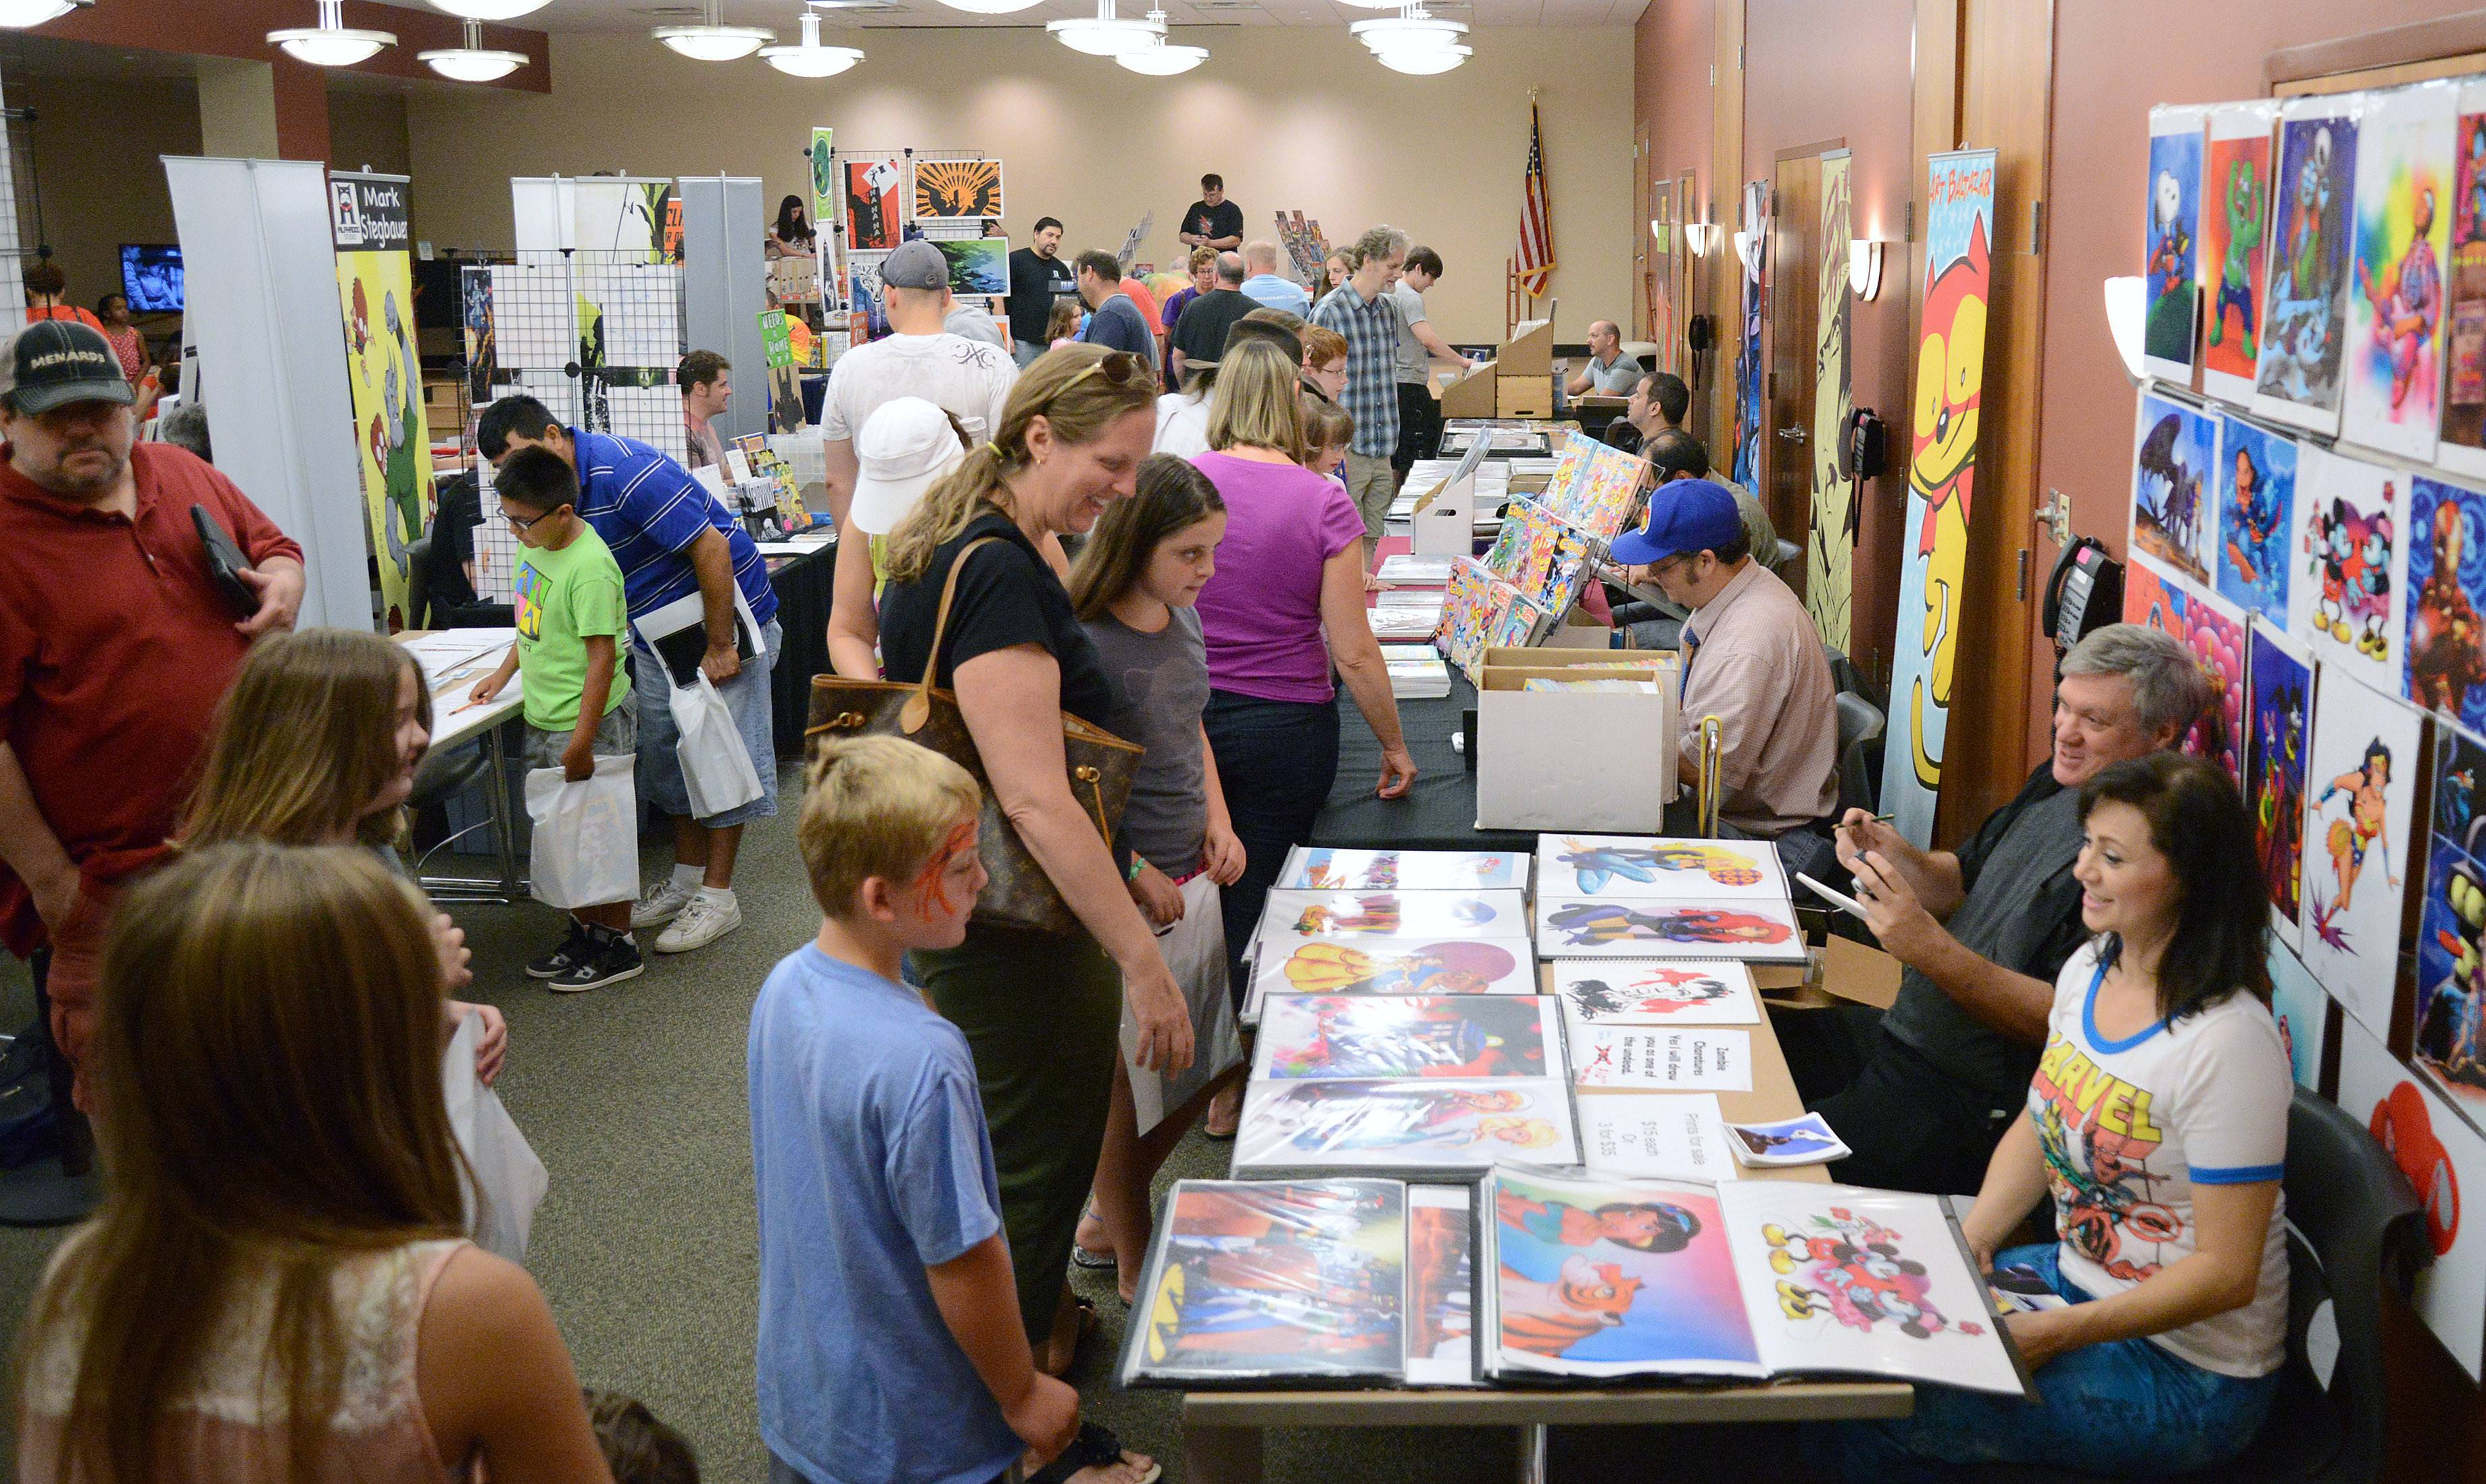 Katie Vaughn, center, of Elgin talks with artist Scott Beaderstadt and his assistant Angel Levine, both of Chicago, at the fifth annual Comic Book Mania Convention at the Gail Borden Library in Elgin on Saturday. Beaderstadt is well known for his imagery for Marvel, Disney and Trollords.